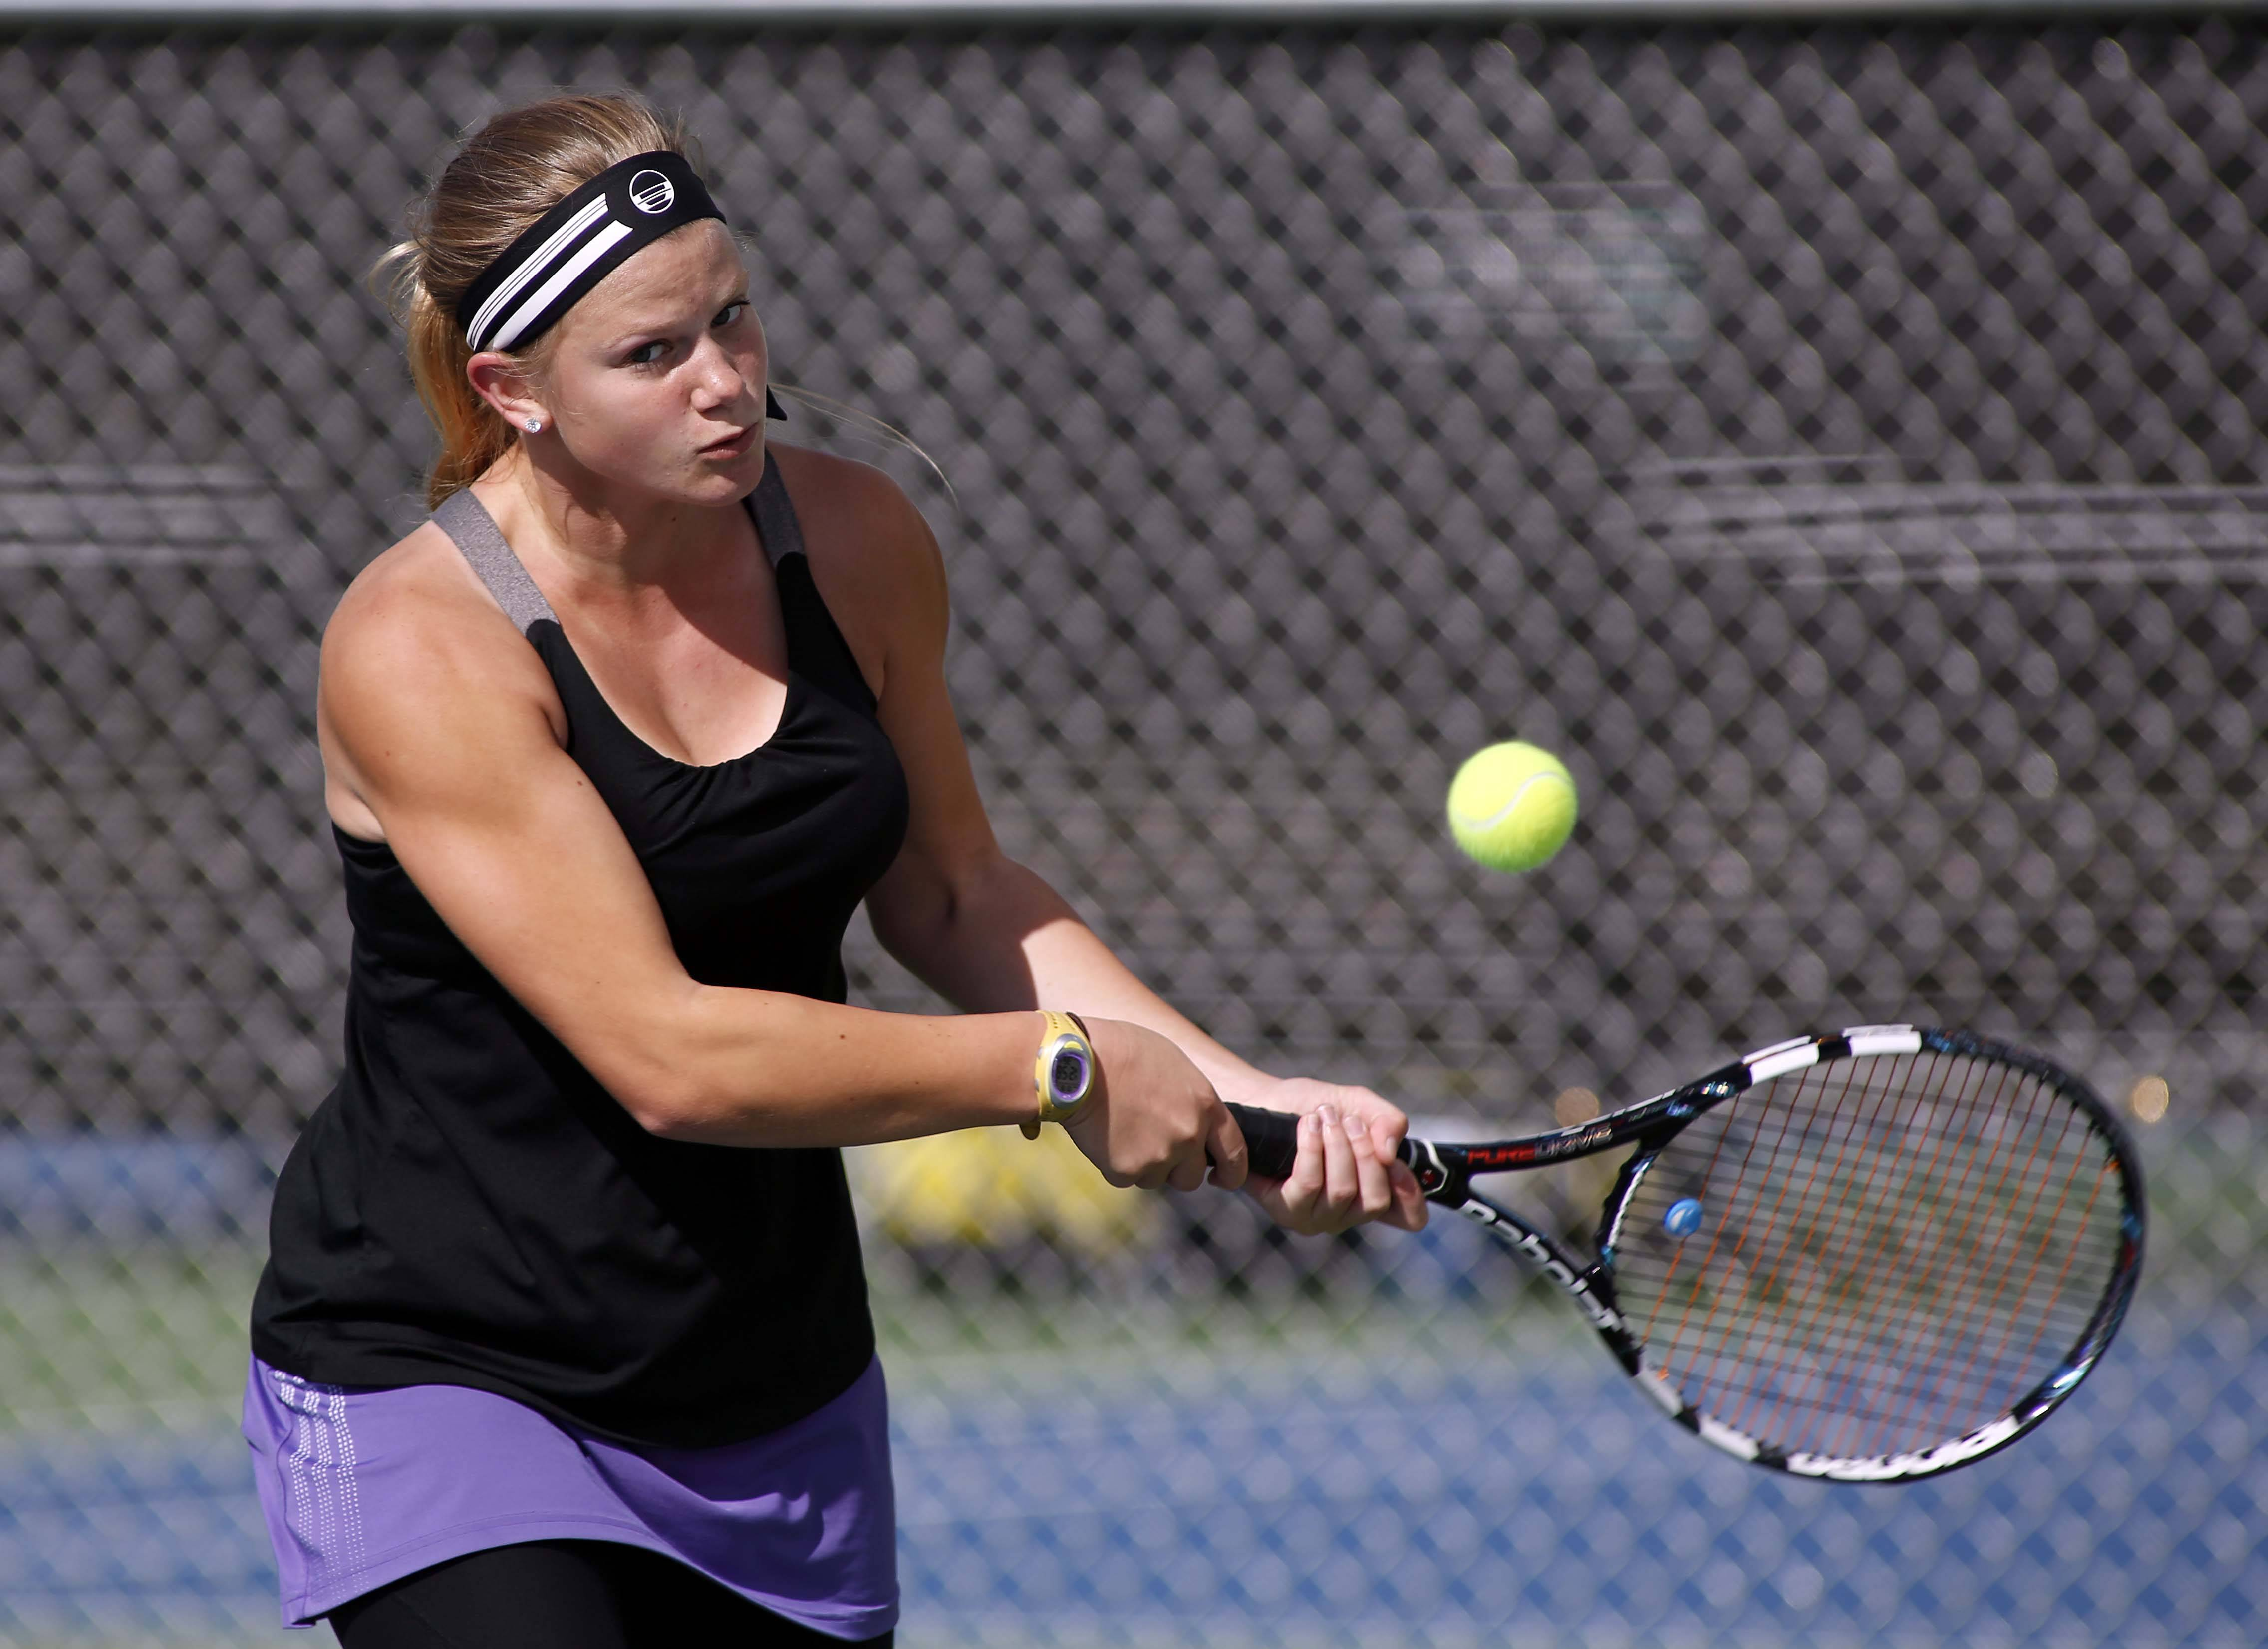 Hampshire's Hannah Hougland in singles action during the Huntley sectional Saturday.